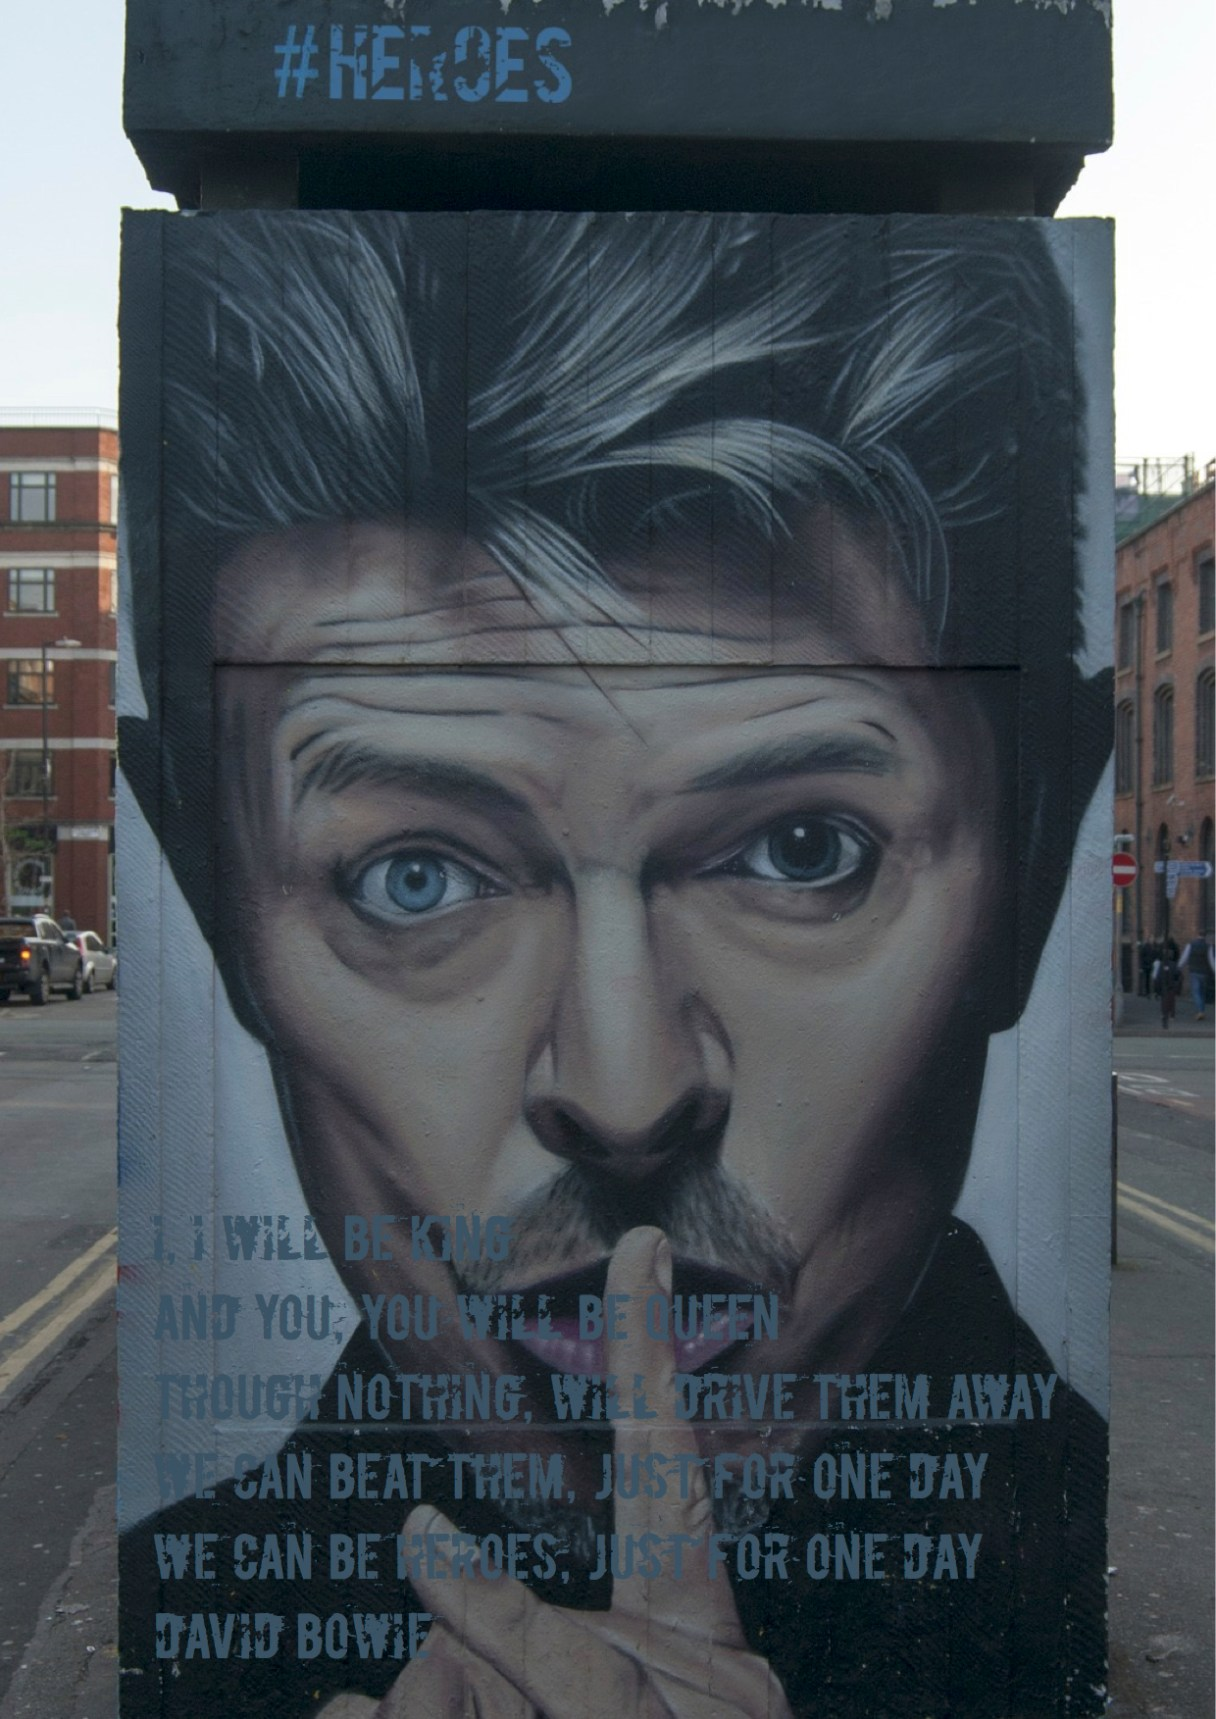 """Dagens citat – David Bowie: """"I, I will be king And you, you will be queen Though nothing, will drive them away We can beat them, just for one day We can be heroes, just for one day"""". Sangskrivere: Brian Eno / David Bowie Heroes sangtekster © Universal Music Publishing Group. Originalfoto: pixabay.com. Citatillustration: Maria Busch"""